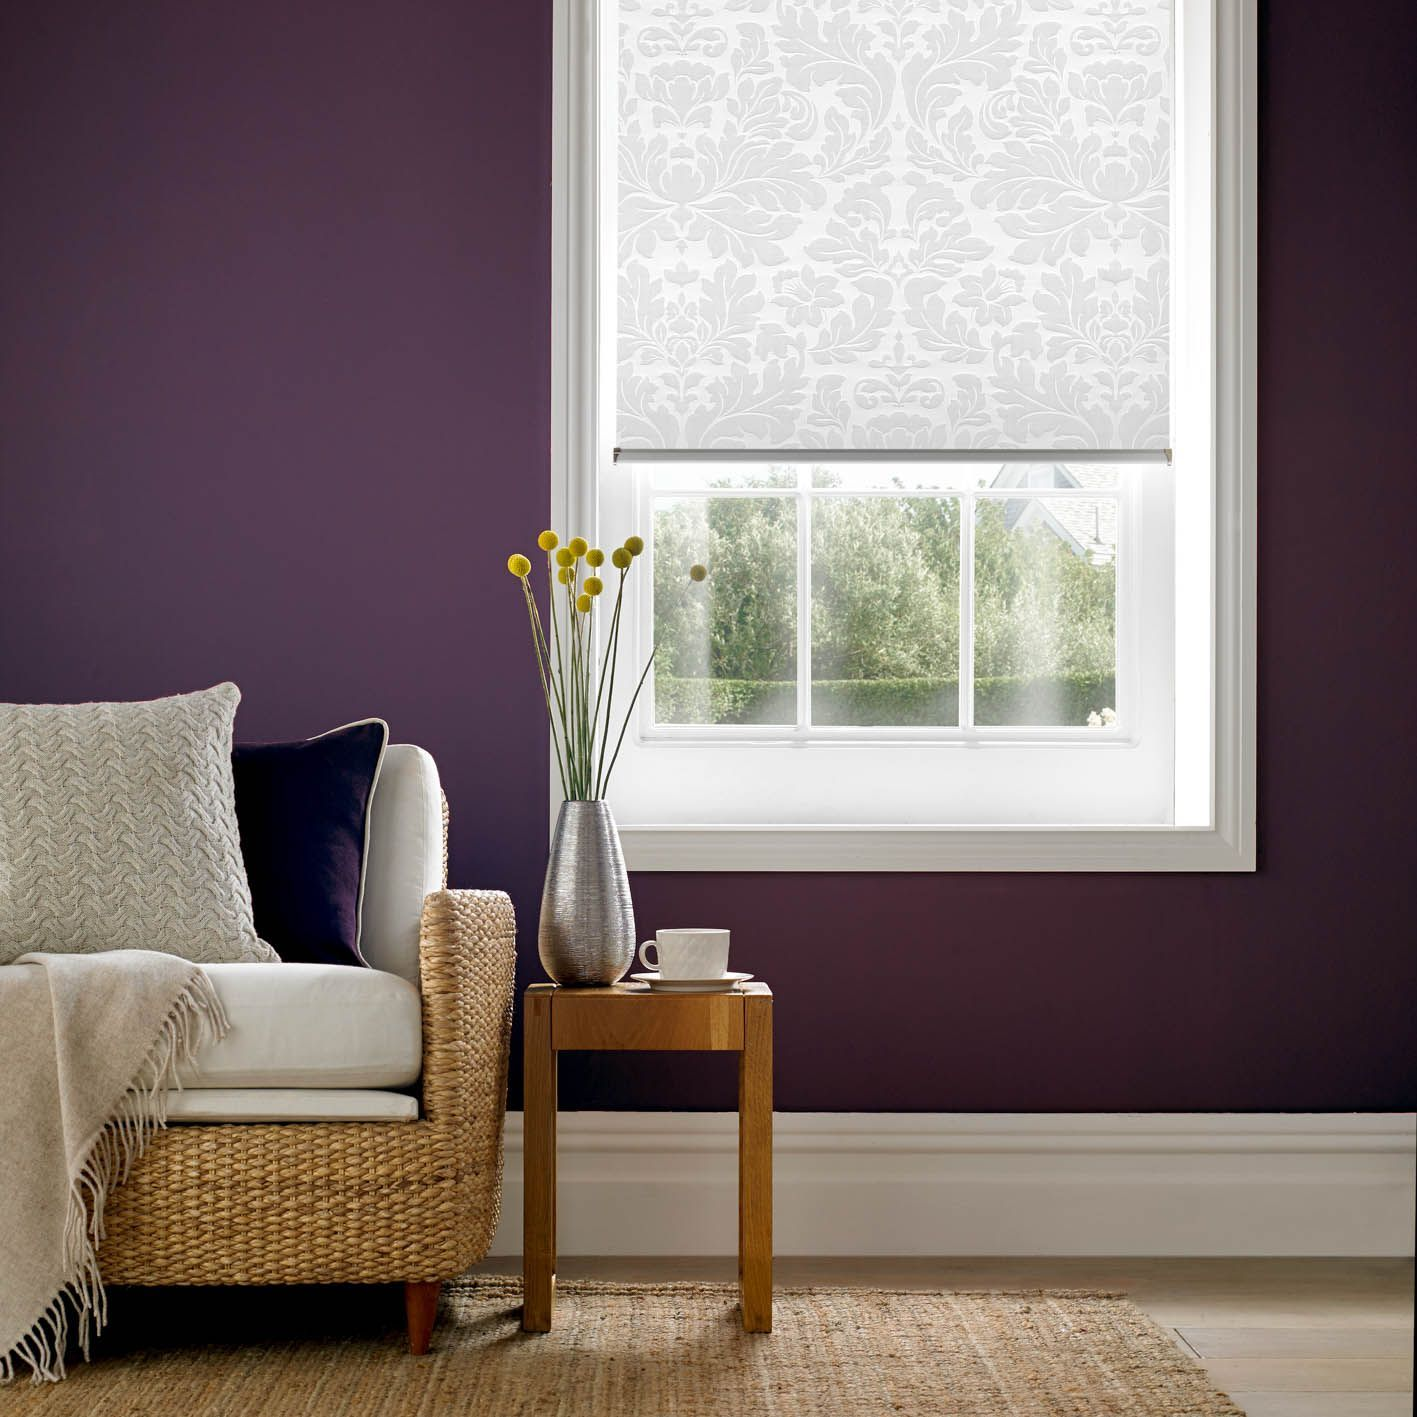 Blinds For Windows With Curtains Farmhouse Blinds Living Room Roller Blinds Bedroom Grey Blinds Layout Bamboo Blinds Woonkamer Jaloezieen Jaloezieen Gordijnen